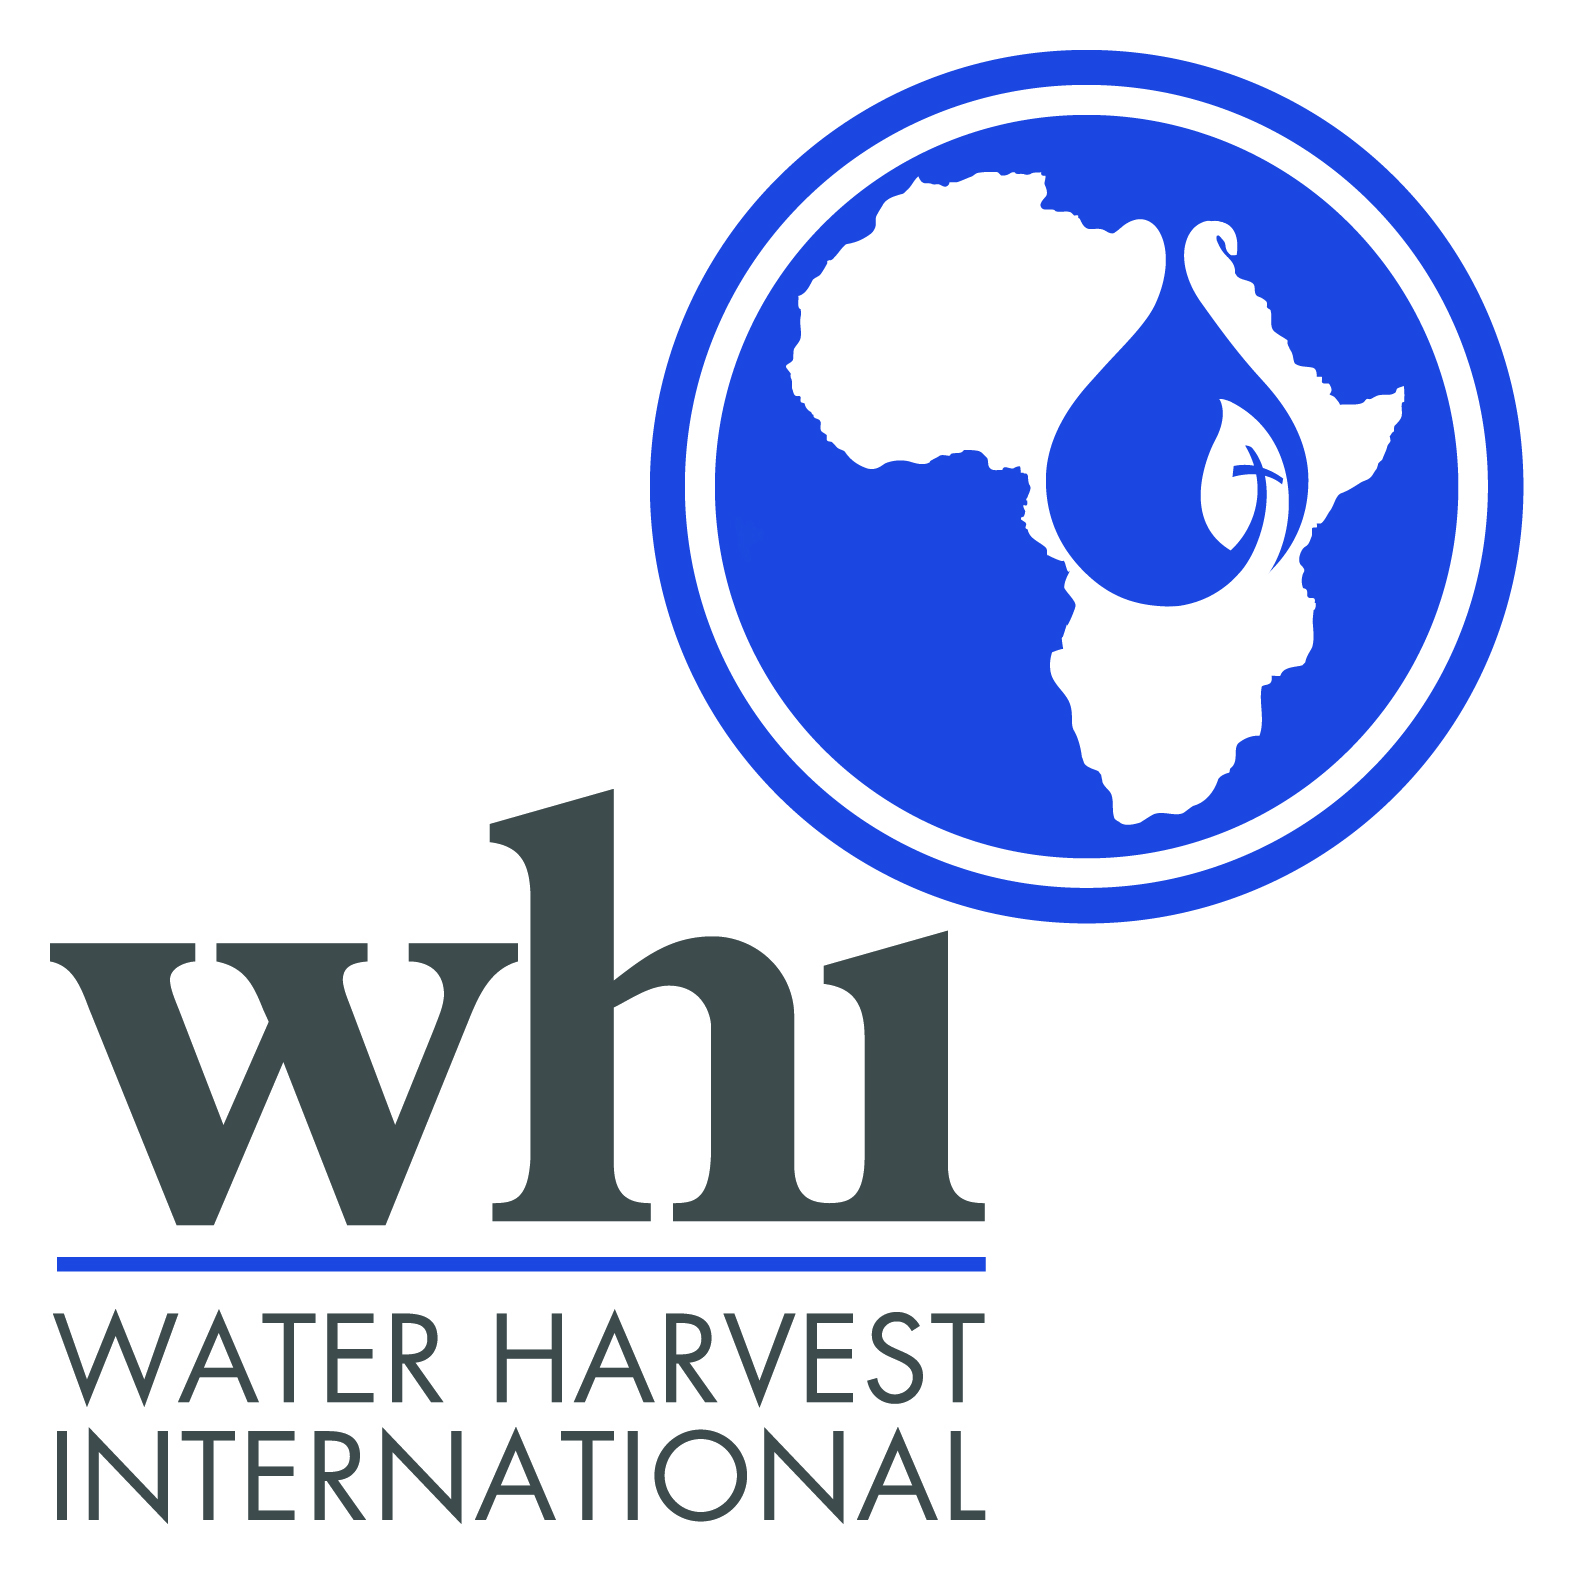 Water Harvest International